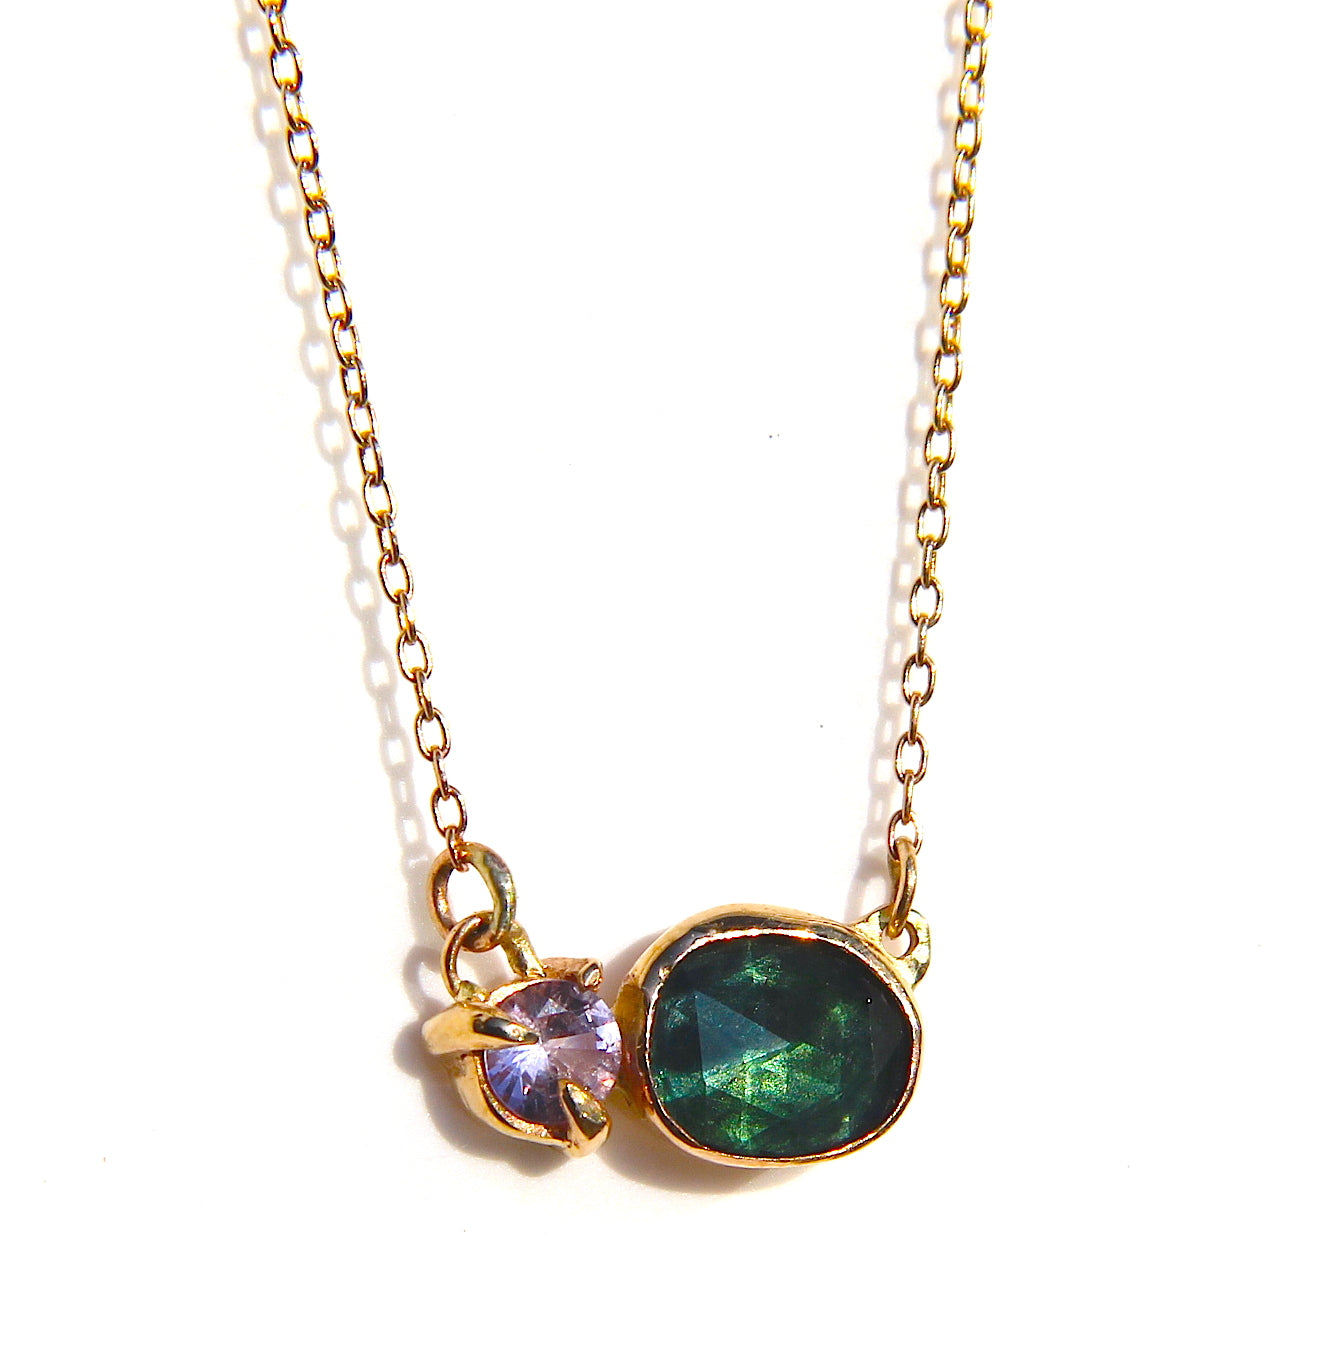 Lavender Spinel and Green Tourmaline Necklace